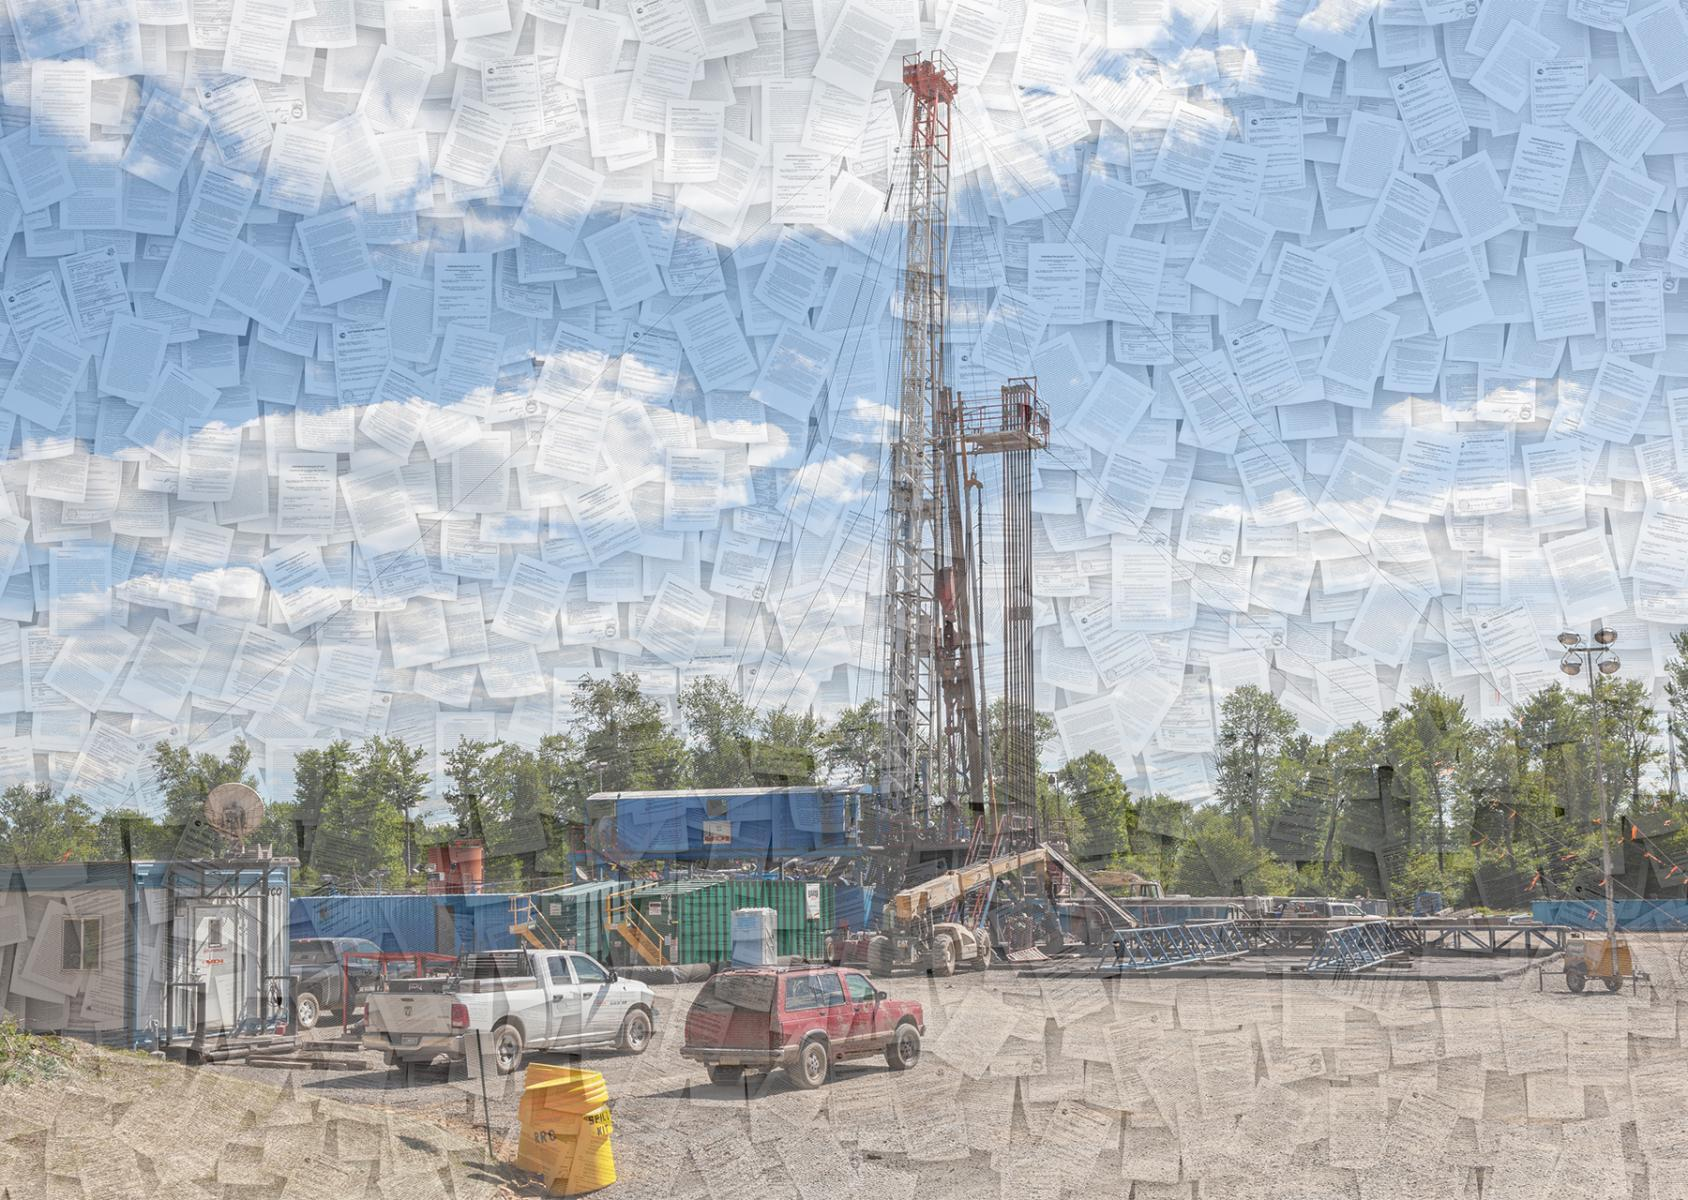 a fracking rig construction site in Pennsylvania overlaid with images of documents